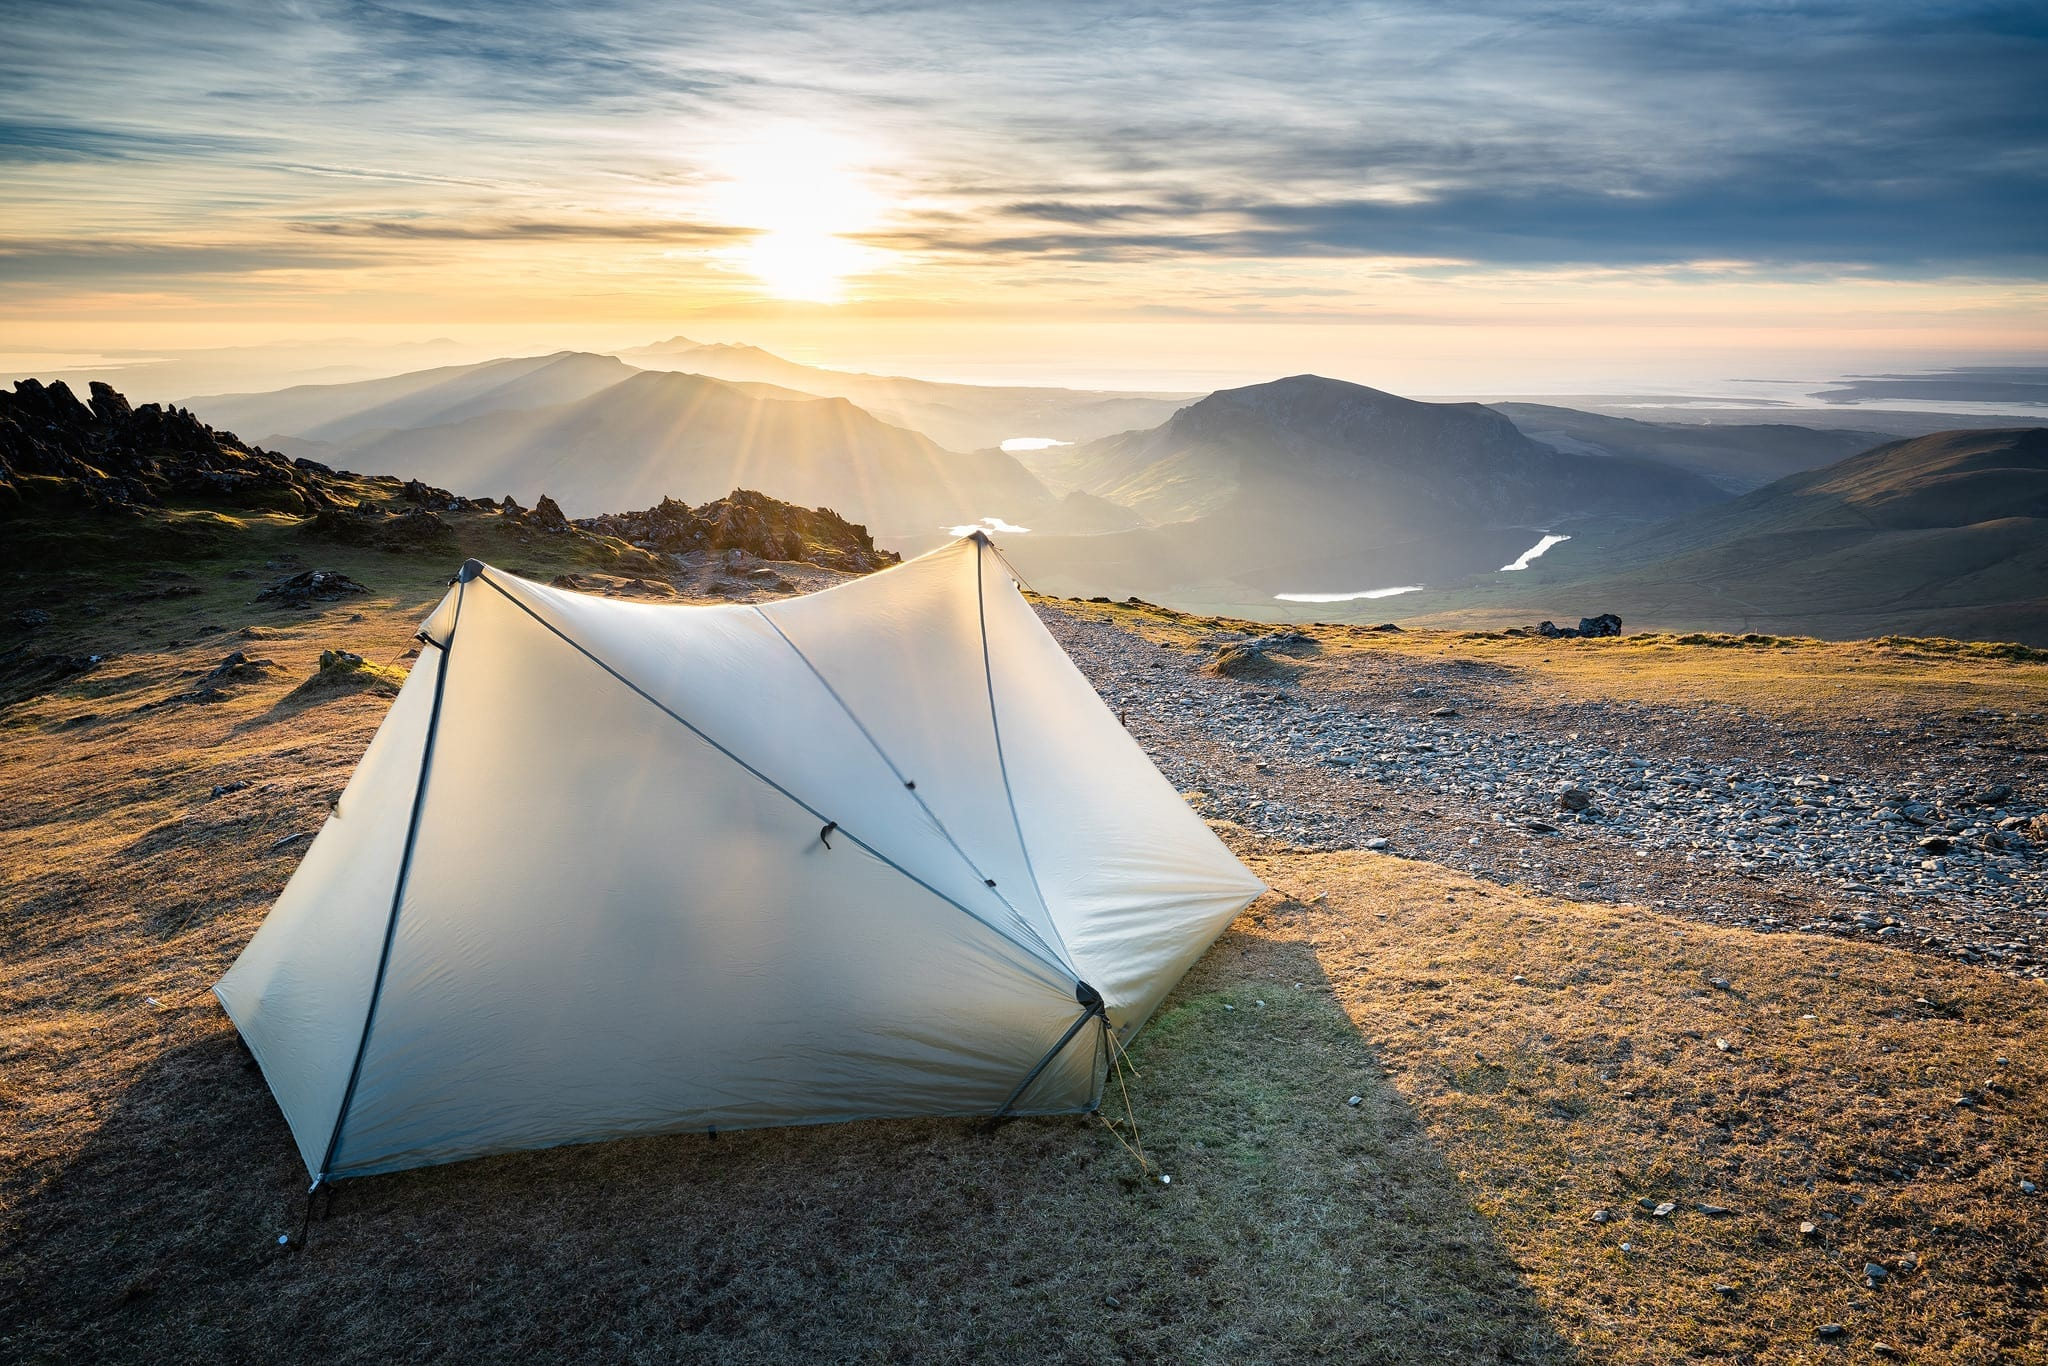 Tarptent Wild Camping on the Rhyd Ddu Path - Snowdonia Wild Camping Photography Workshop